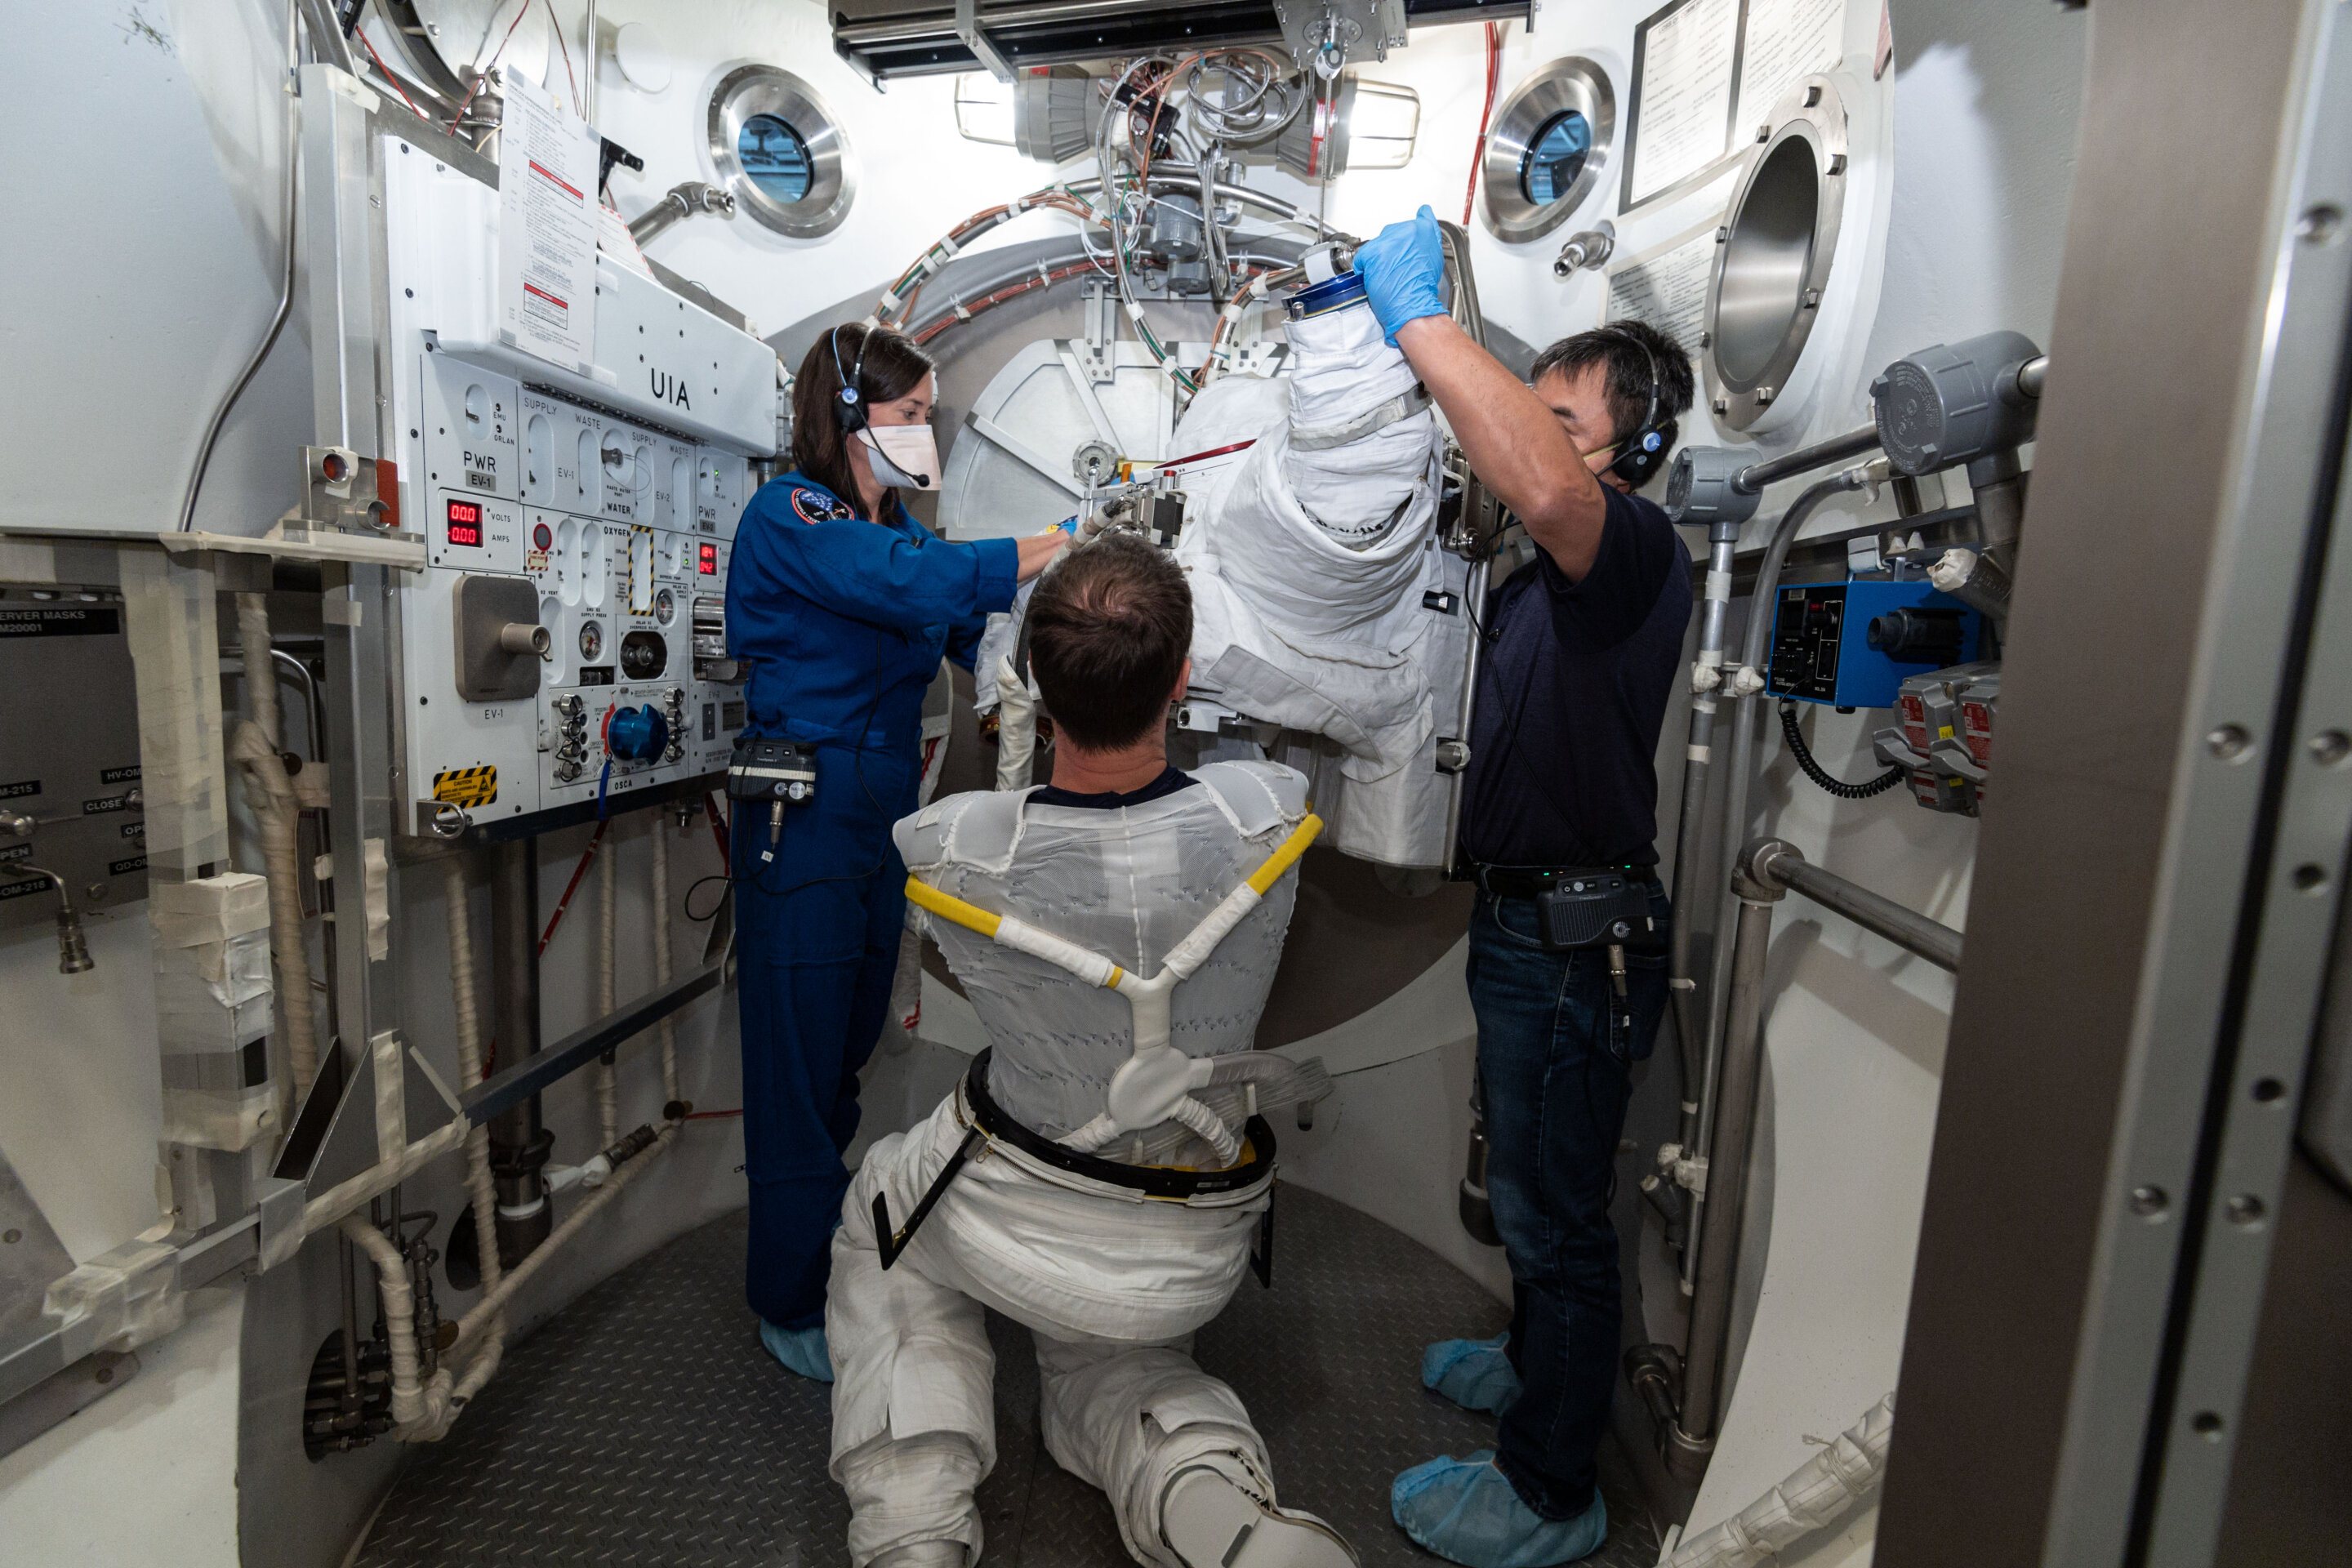 How to keep spacesuit 'underwear' clean?